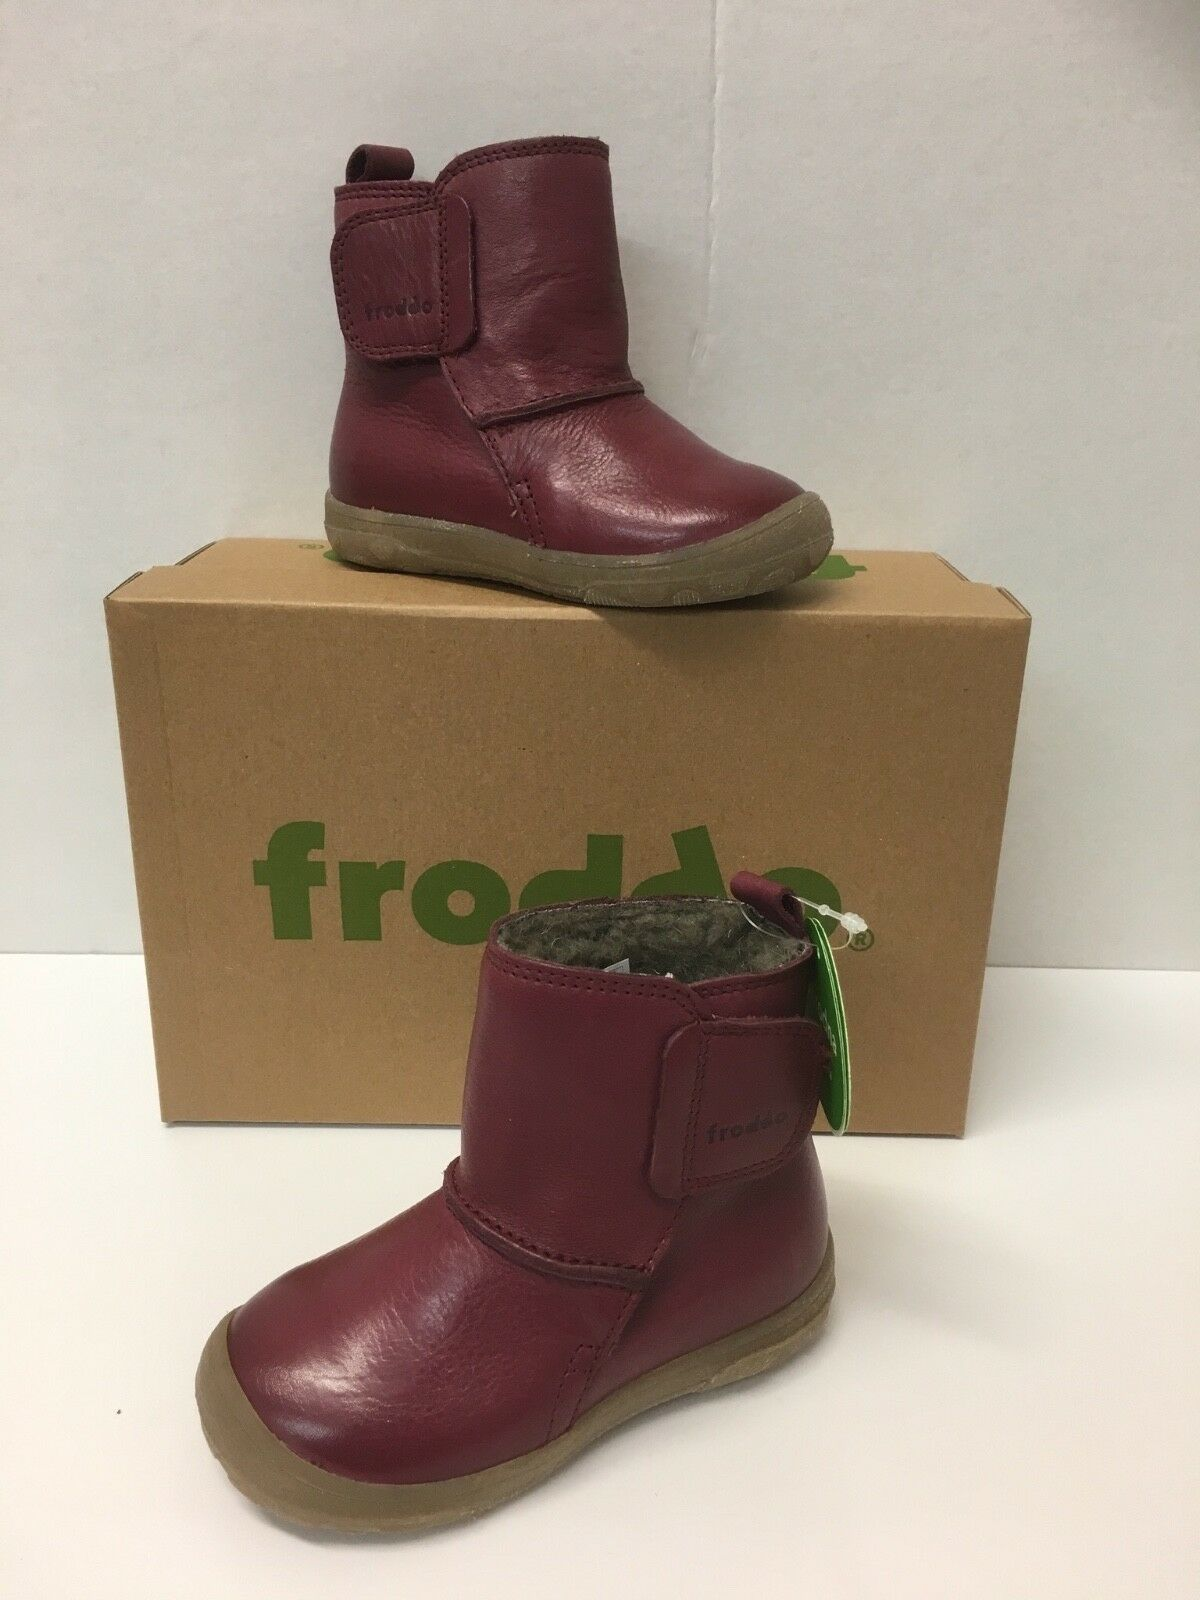 G2160051-4 With wool lining Froddo Girls Waterproof Ankle Boots In Bordeaux